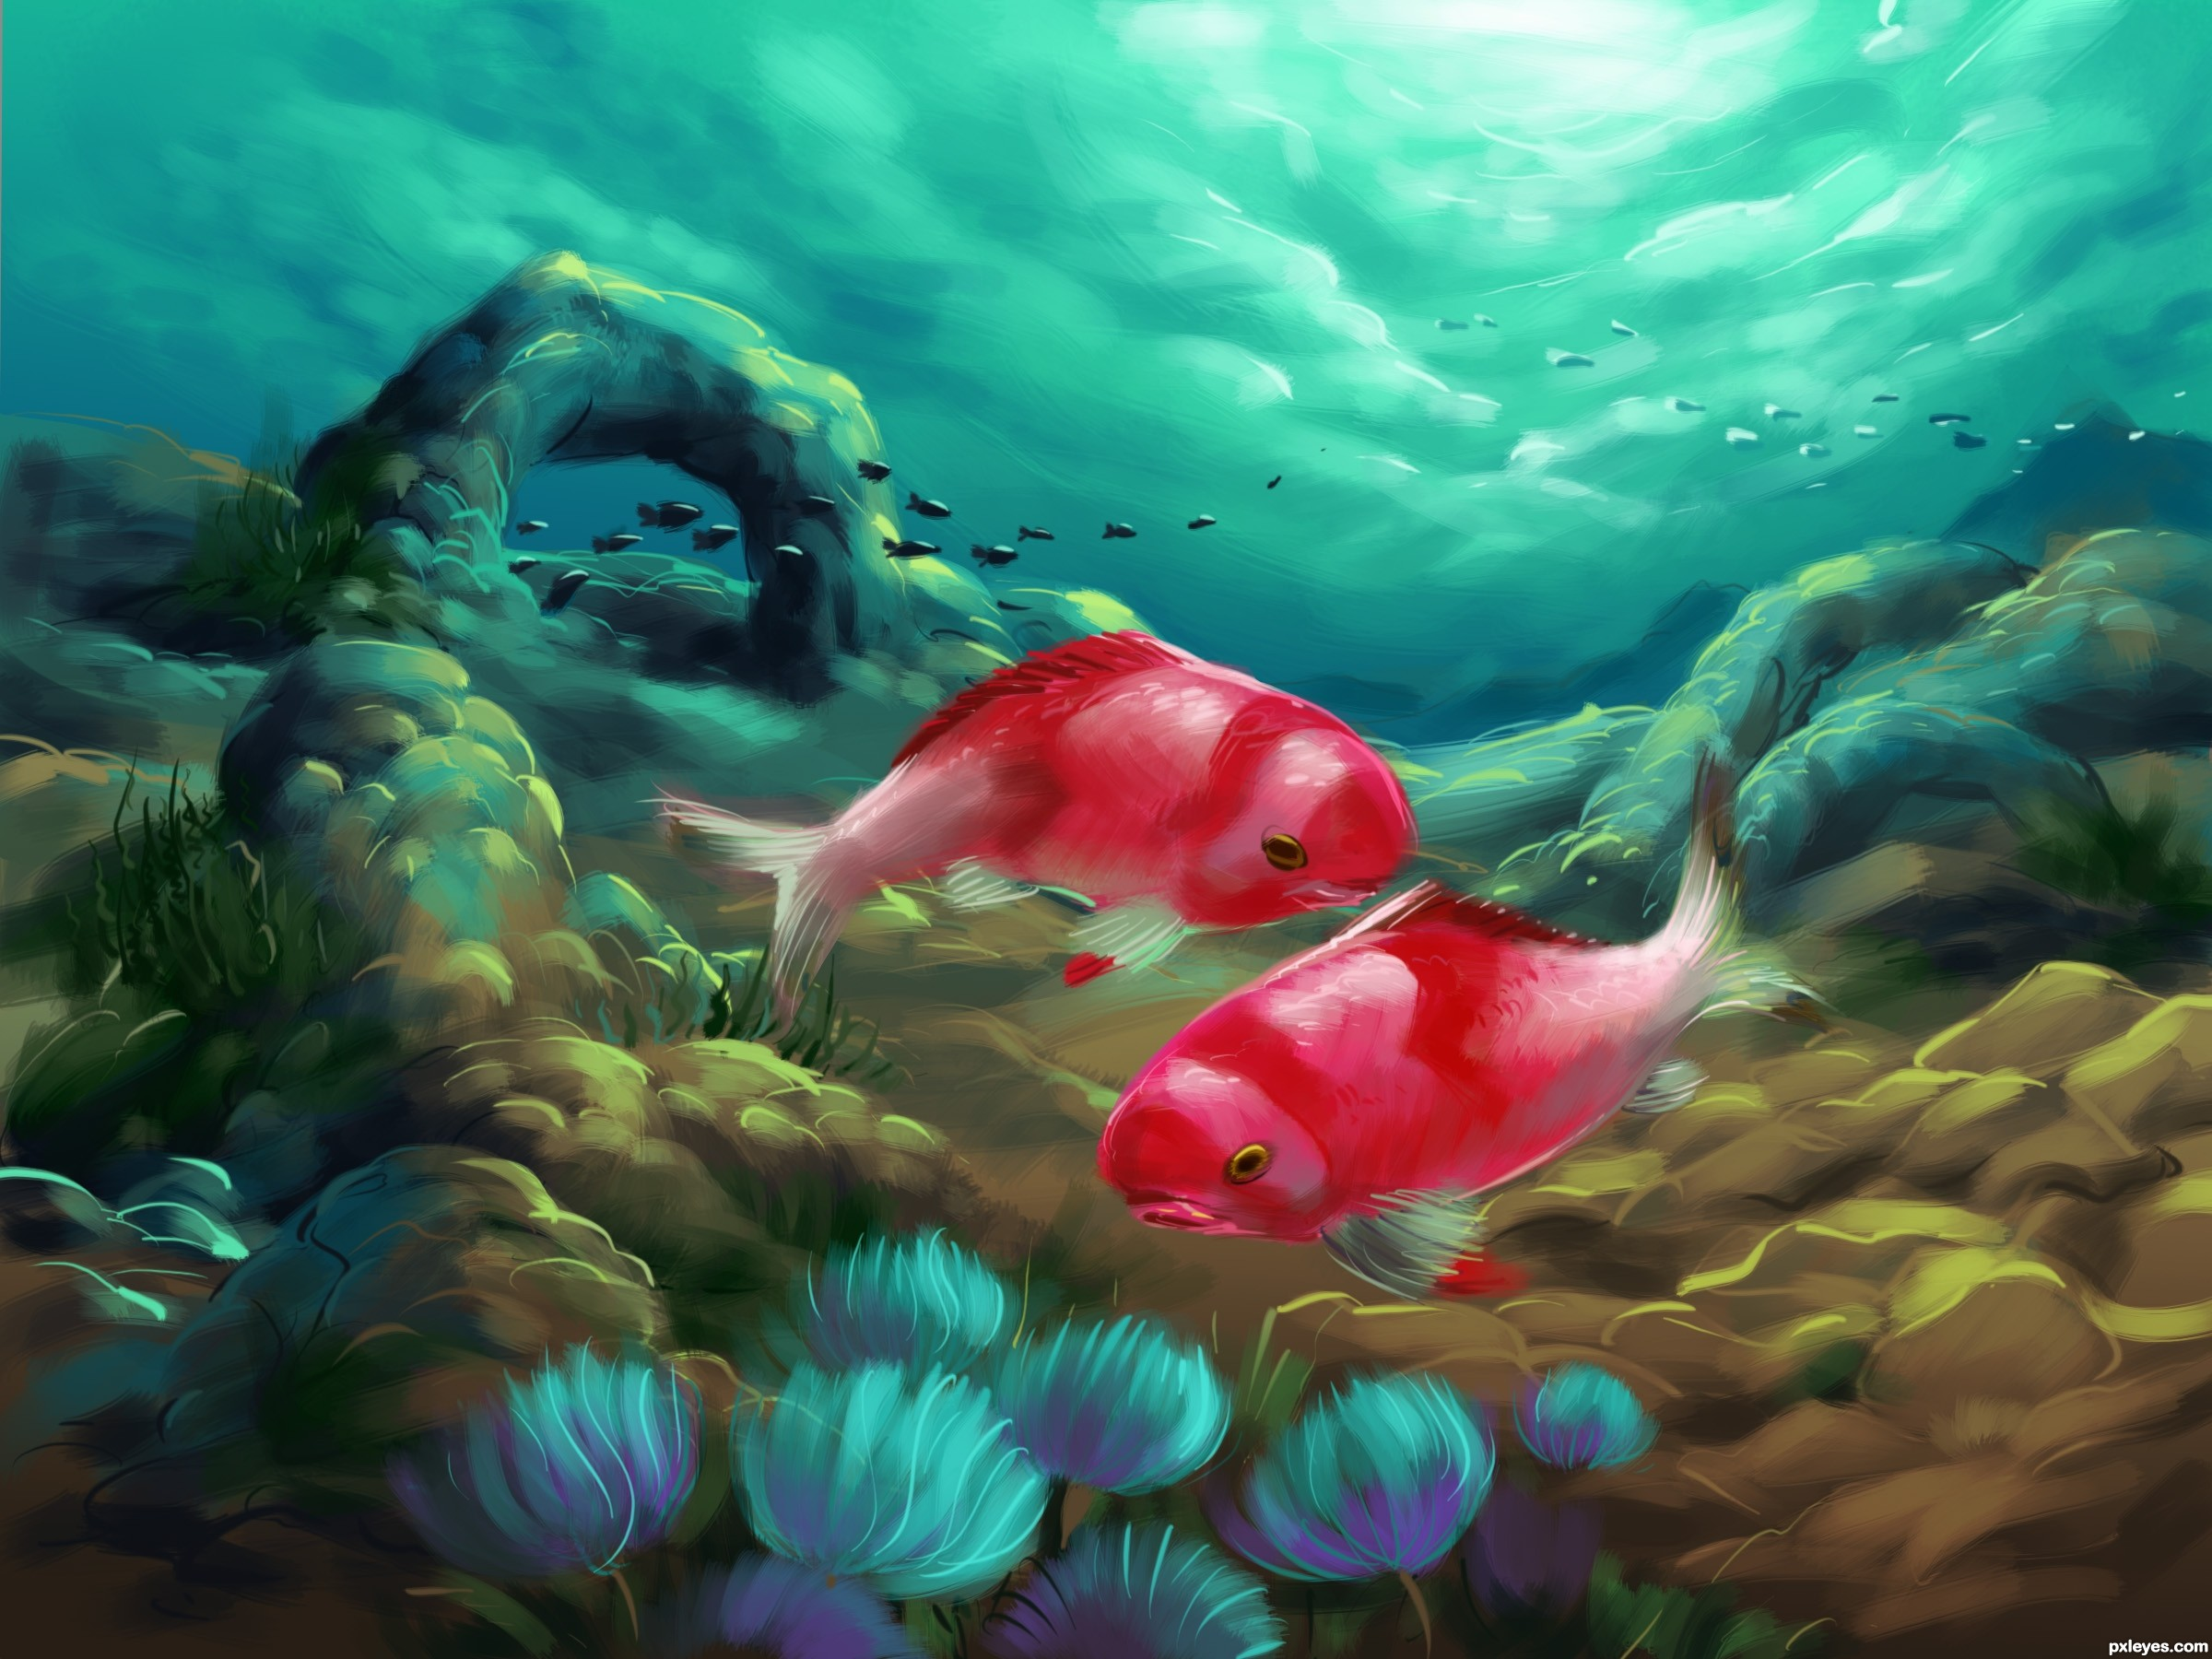 underwater scene drawing at getdrawings | free for personal use